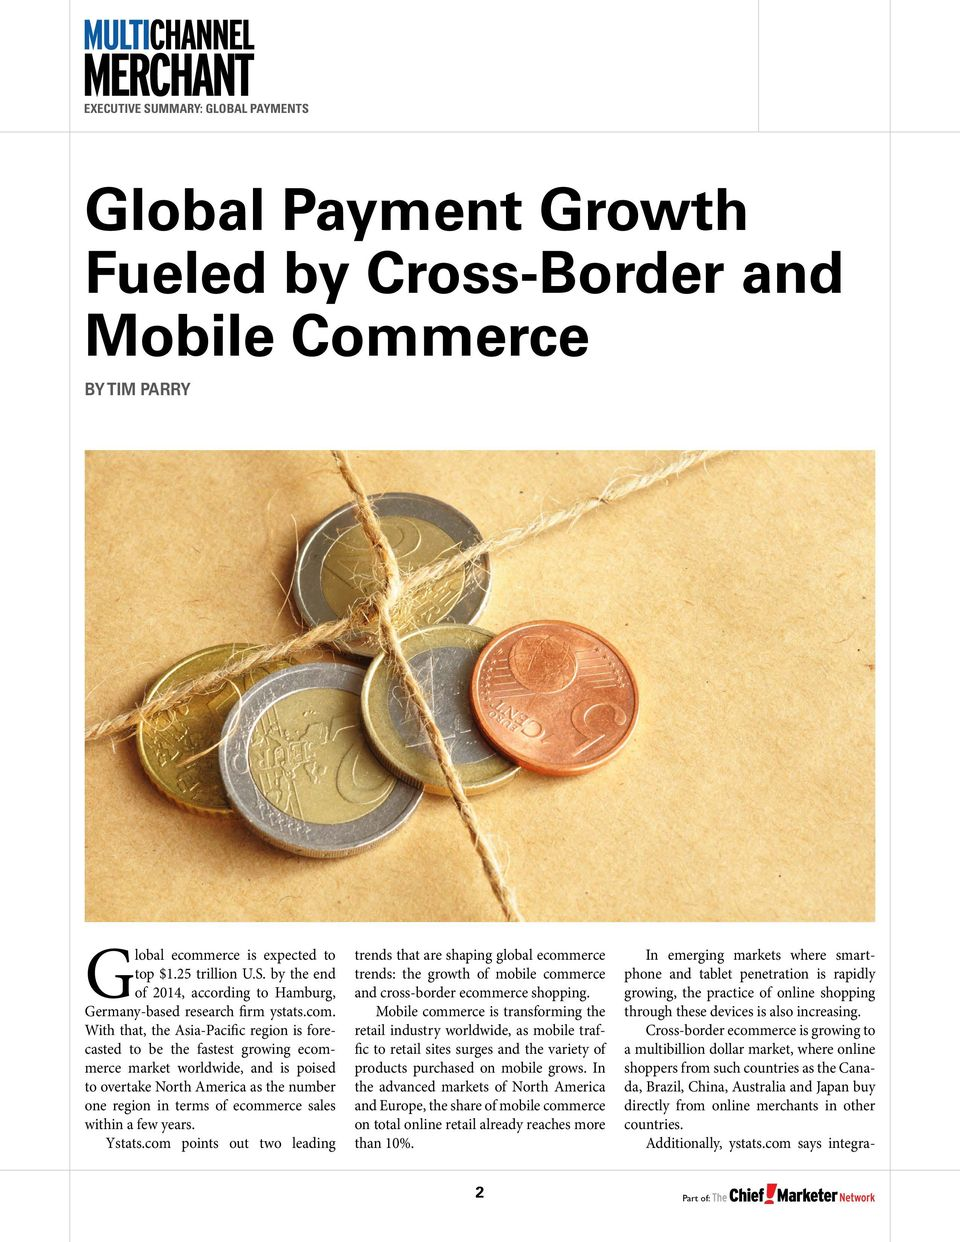 With that, the Asia-Pacific region is forecasted to be the fastest growing ecommerce market worldwide, and is poised to overtake North America as the number one region in terms of ecommerce sales